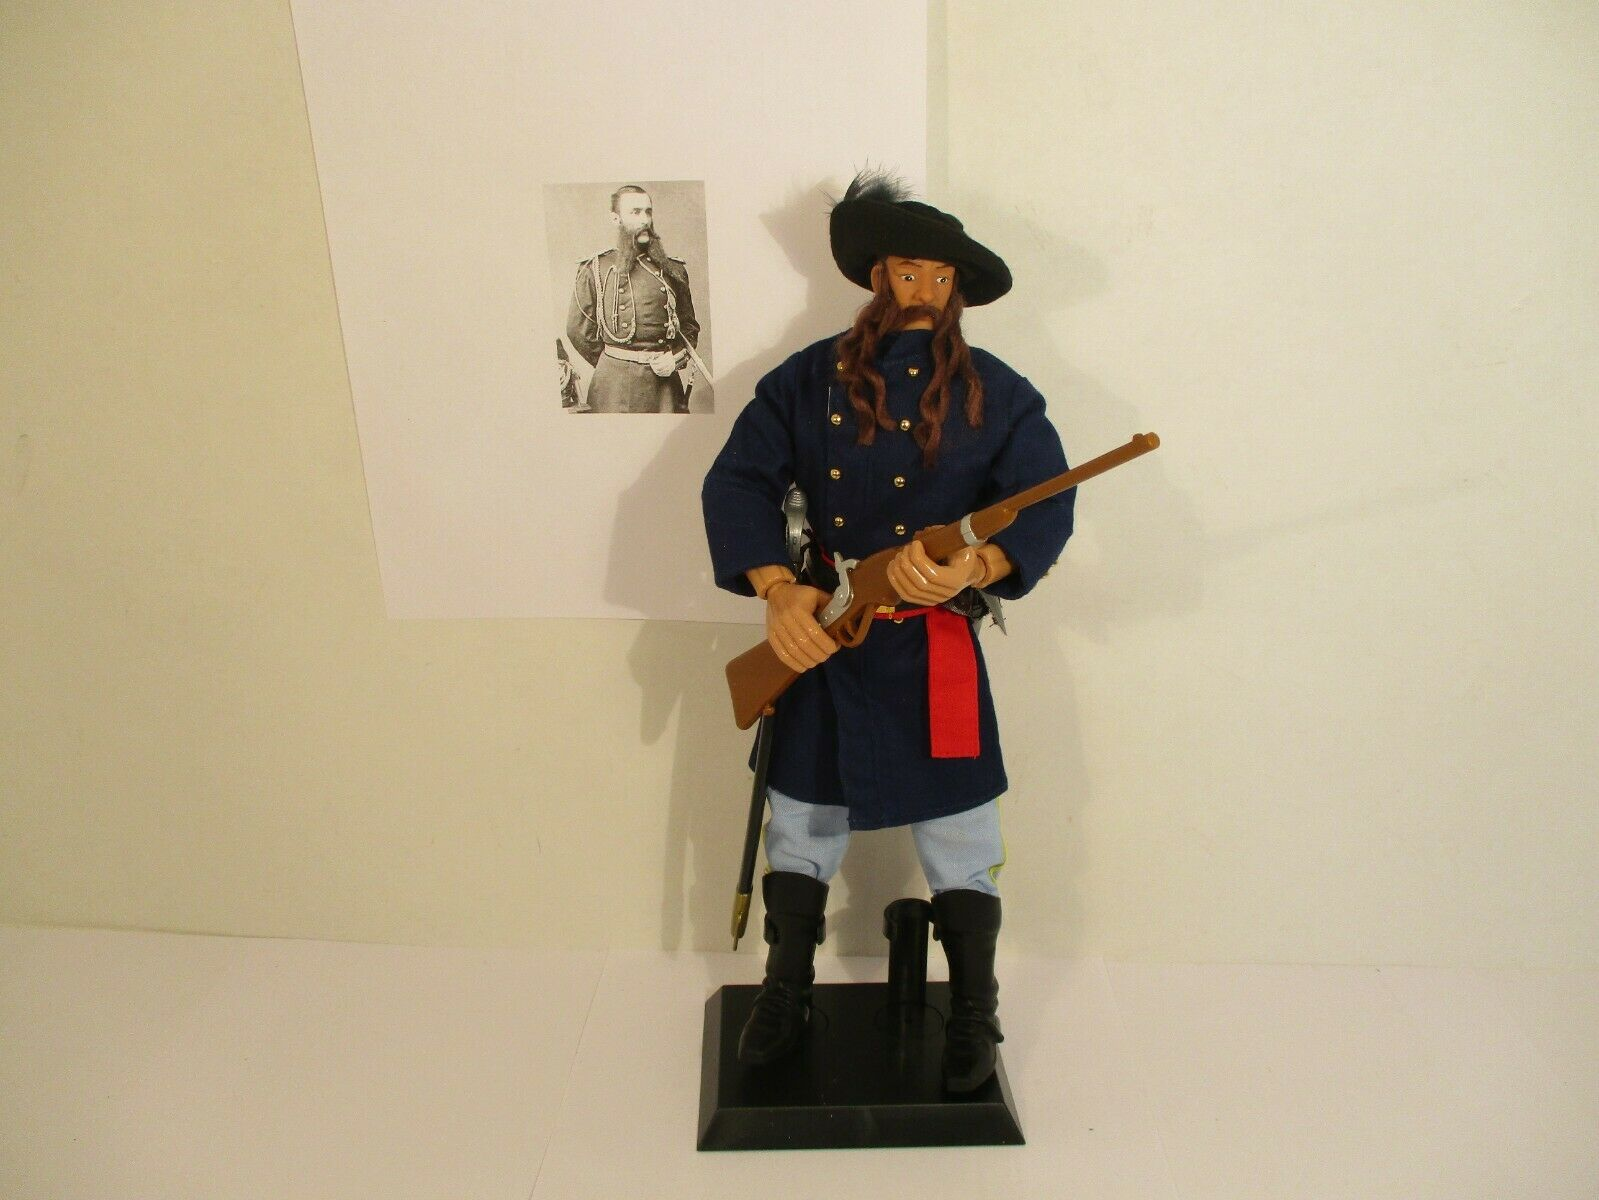 Lt William W Cooke Indian fighter Custer's Last Stand custom 1 6 12  figure